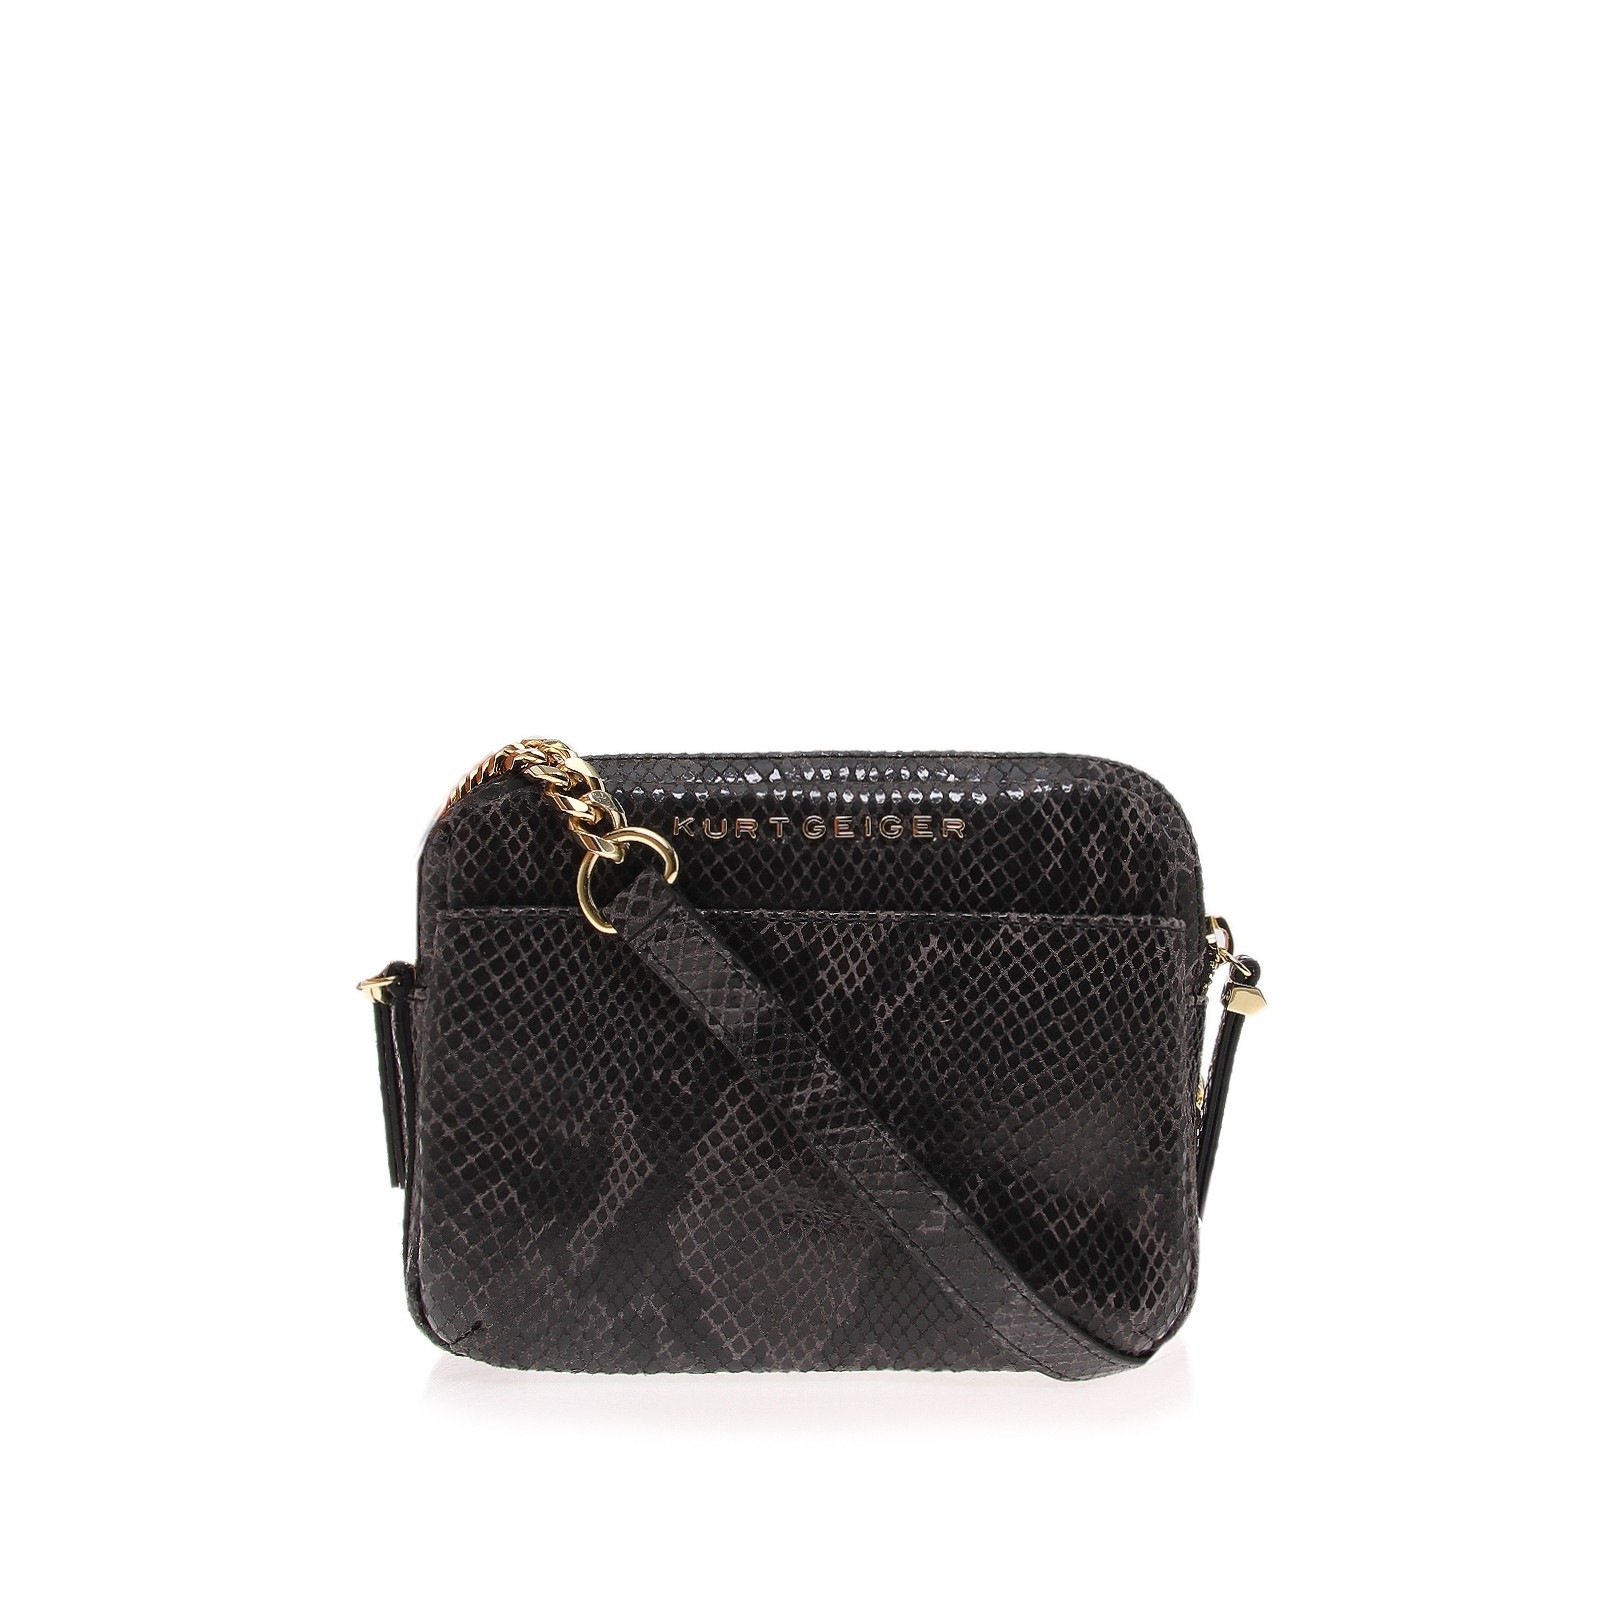 Double zip sml crossbody black cross body bag by kurt geiger london